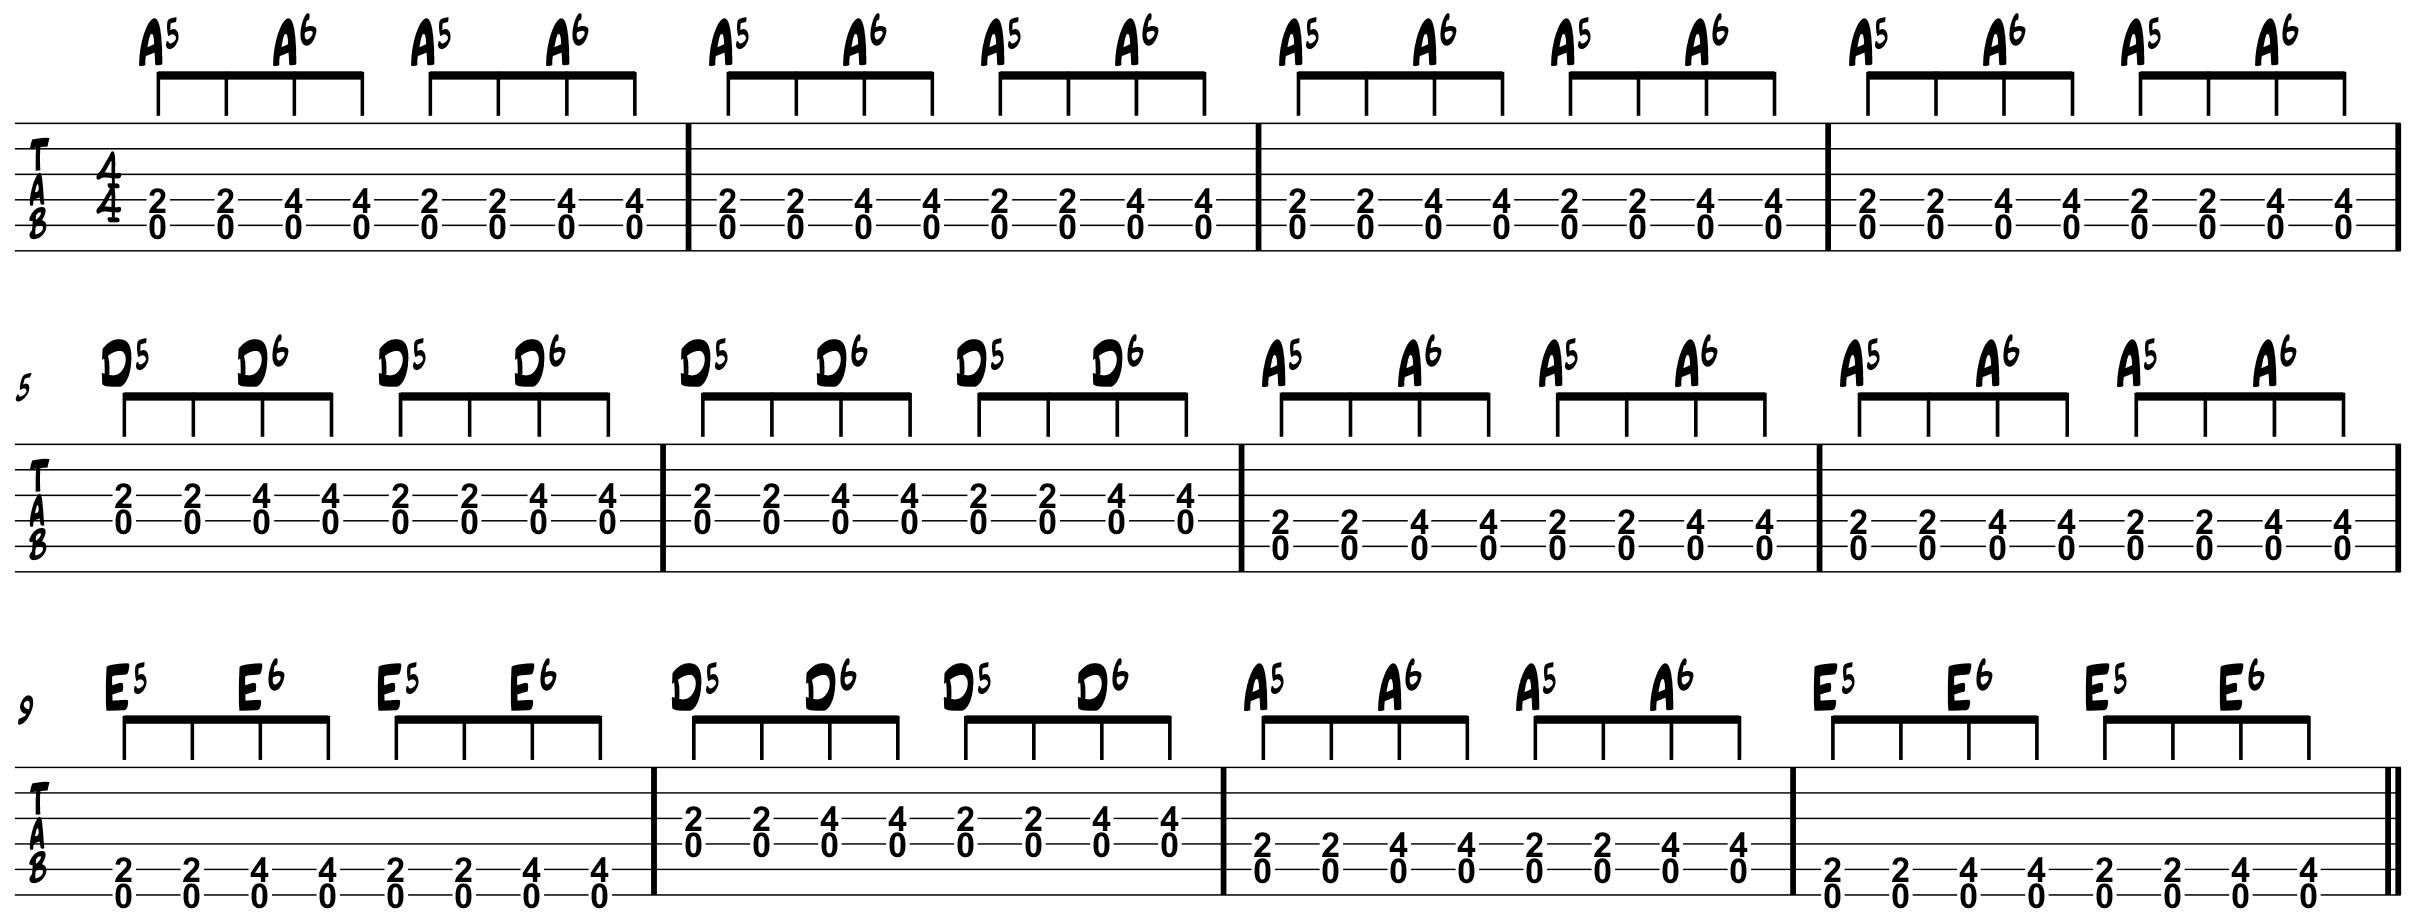 Blues Chords Chart 2